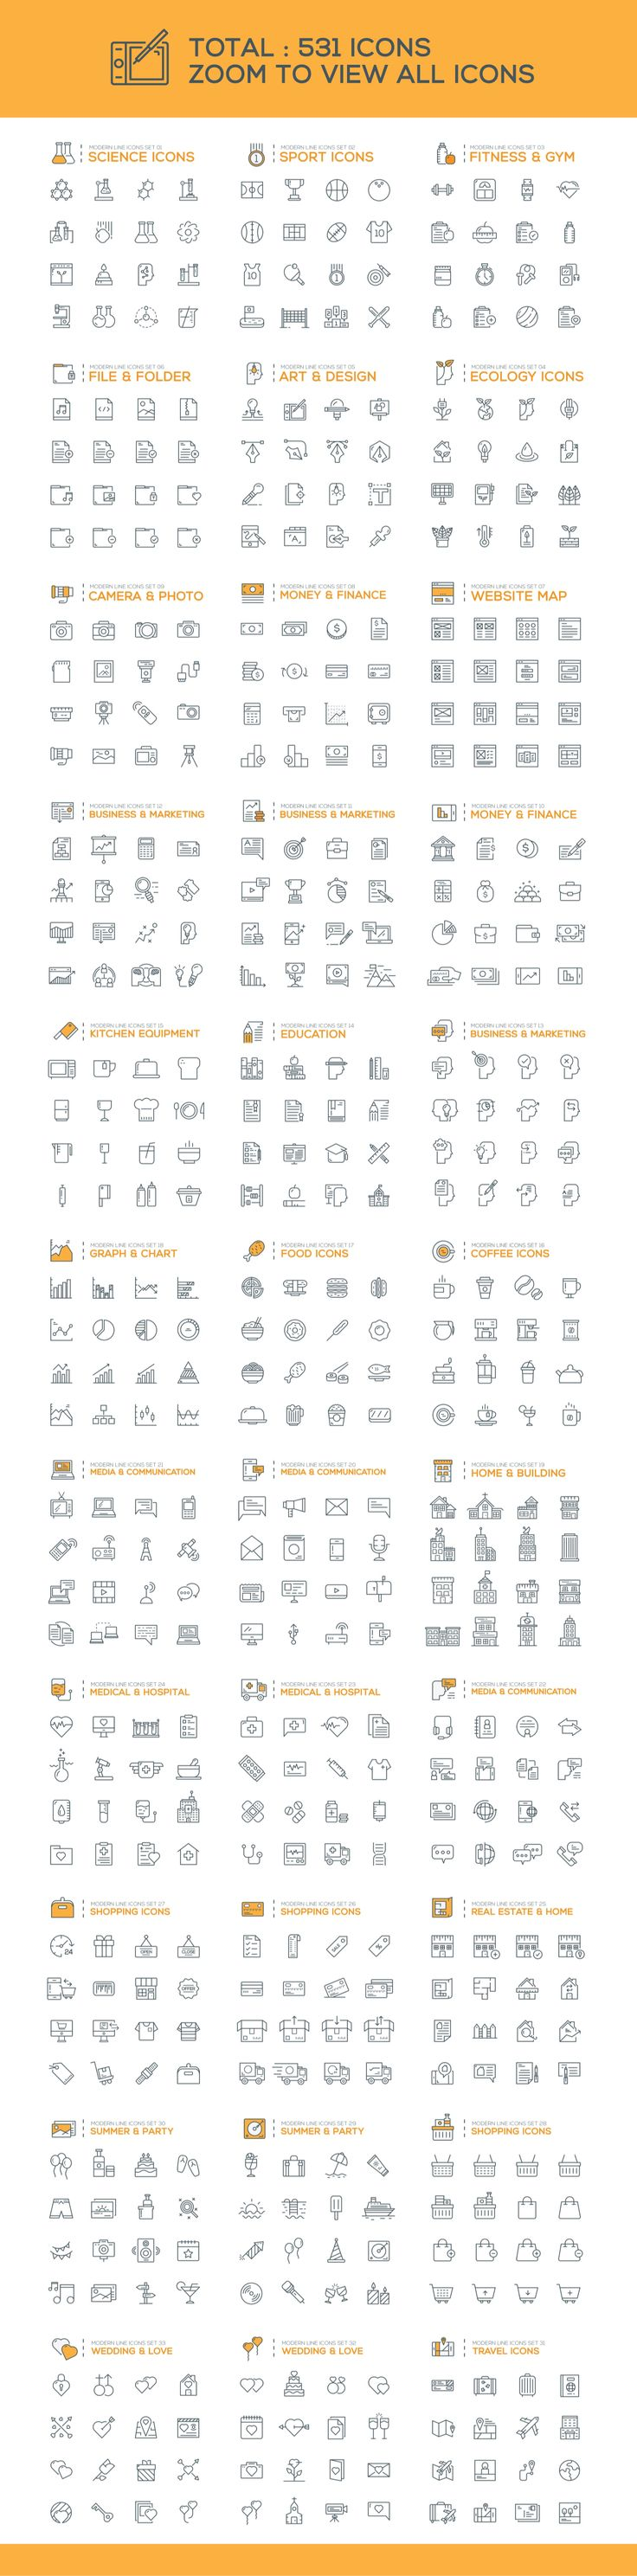 Wireless icon line iconset iconsmind - 500 Modern Line Icons Pack By Graphicafe On Creative Market